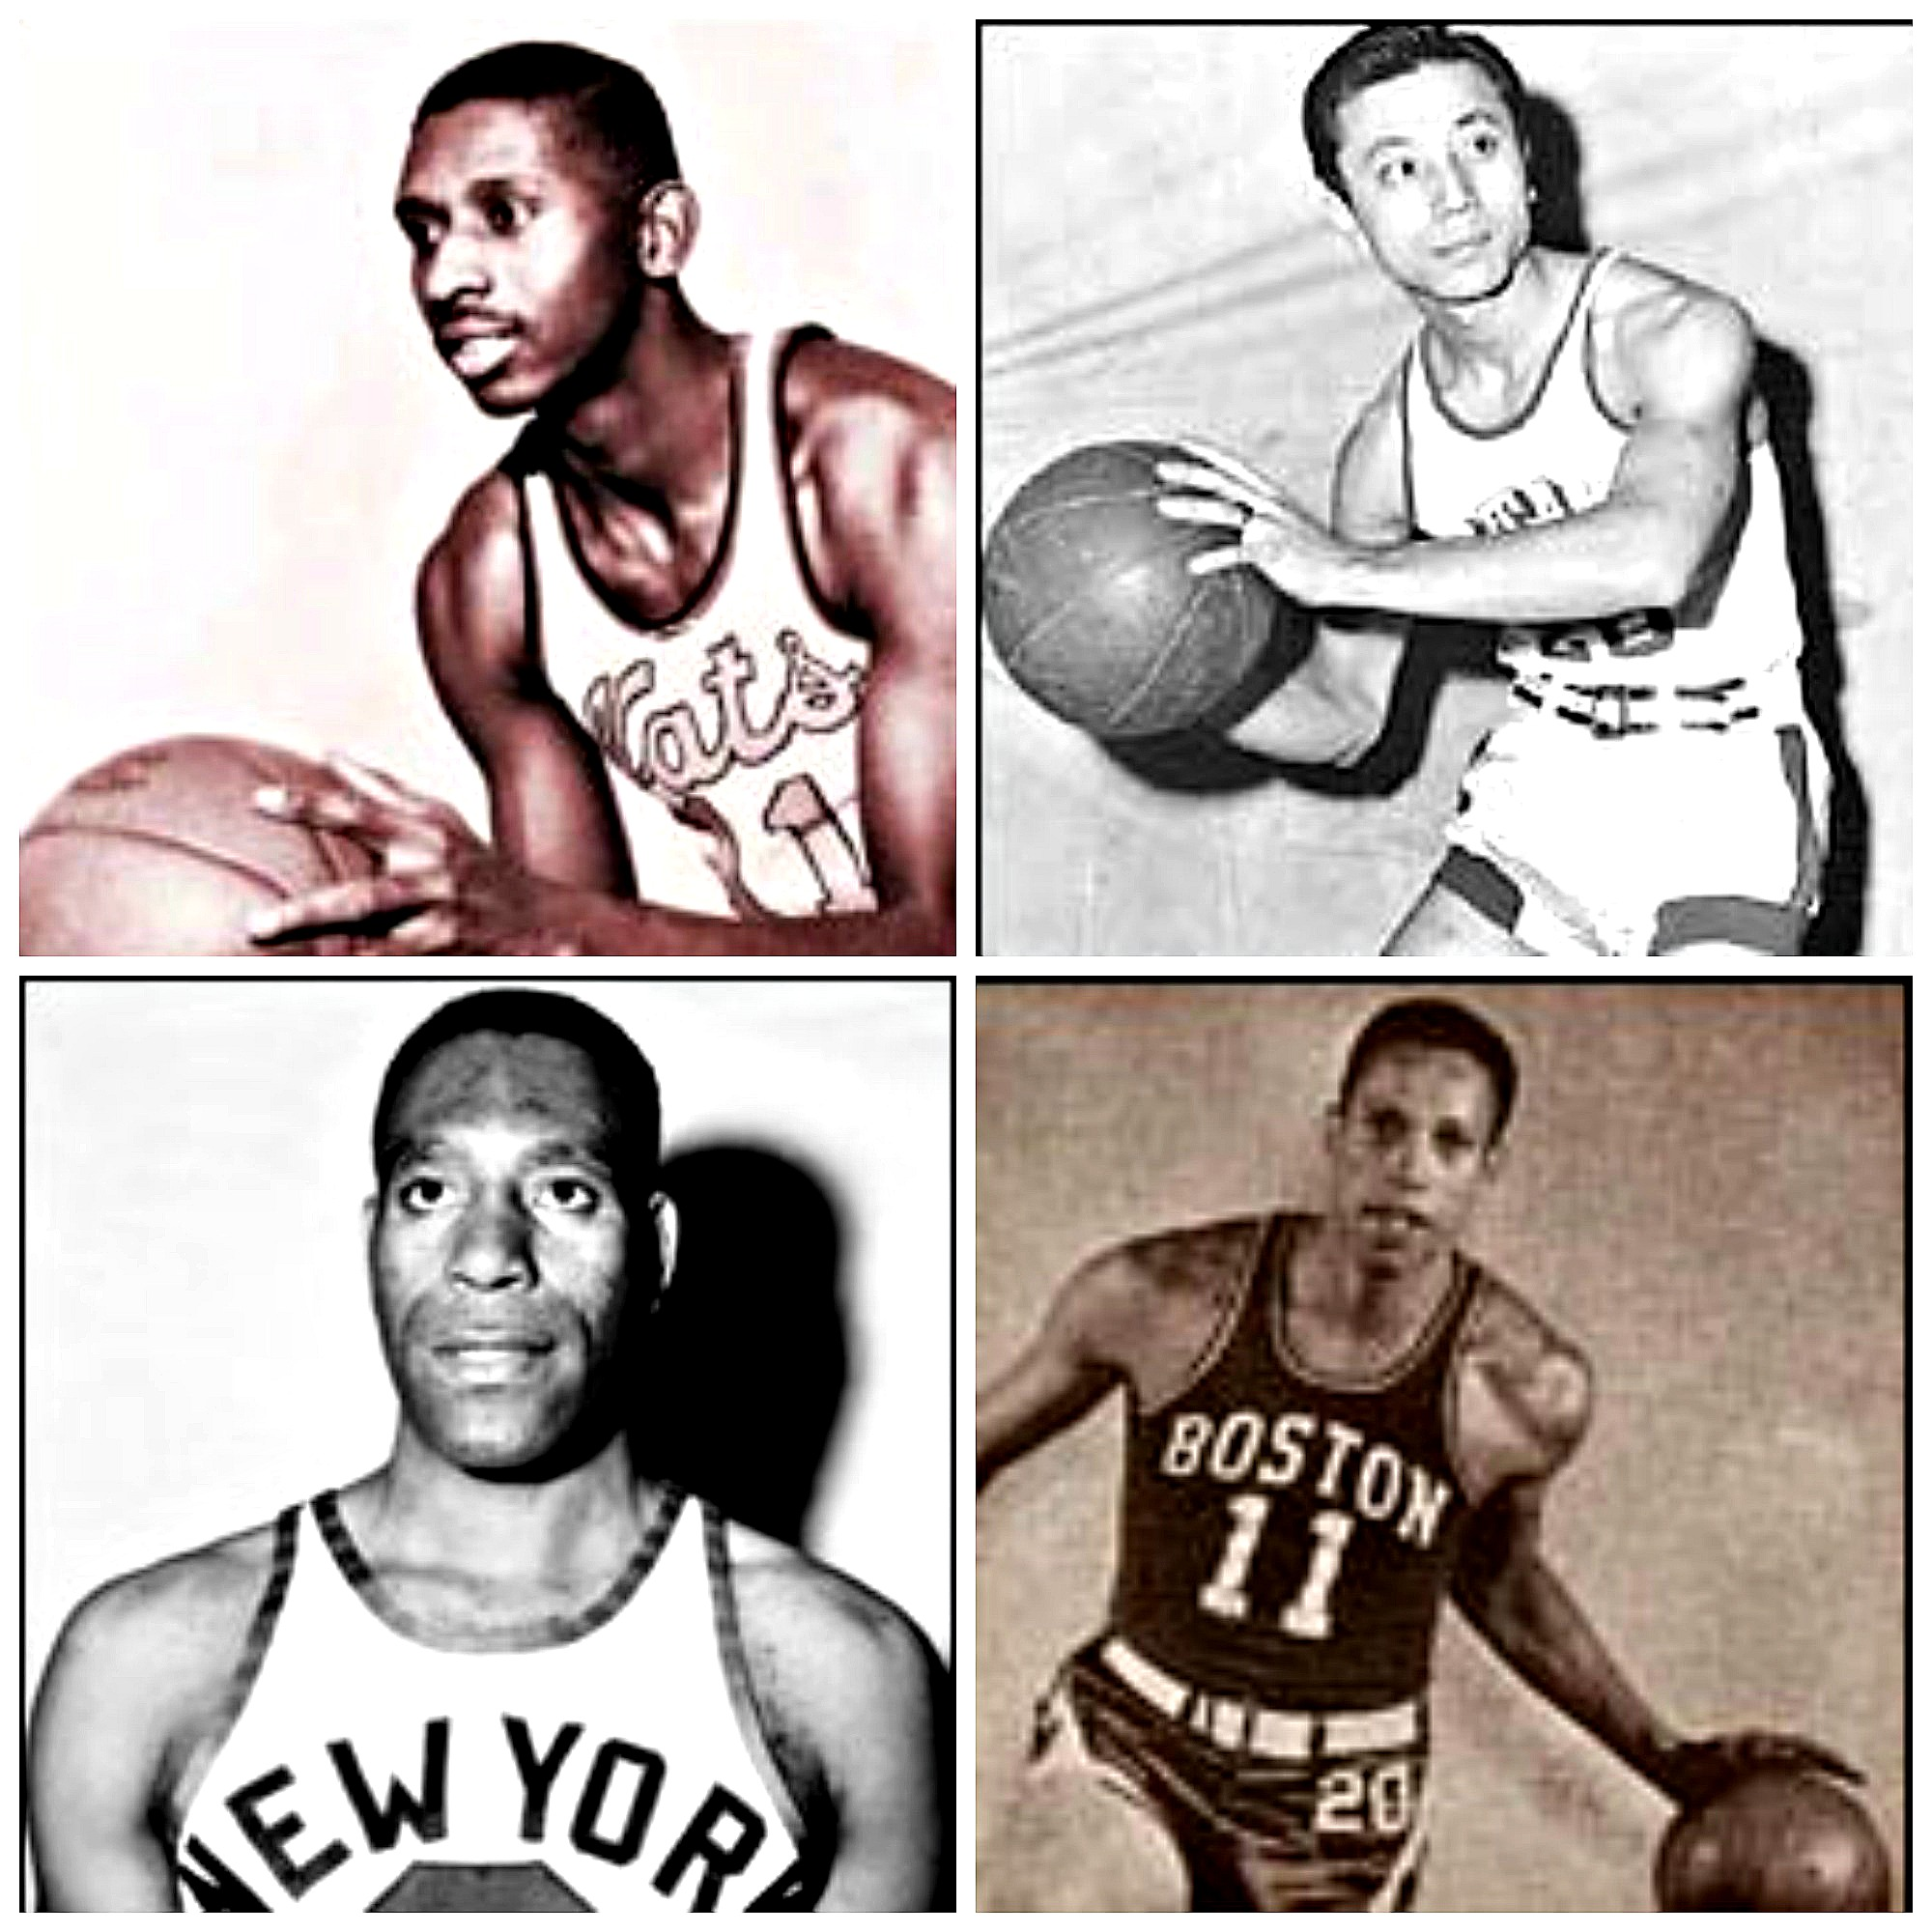 Here's a list of milestones that helped break the NBA color barrier